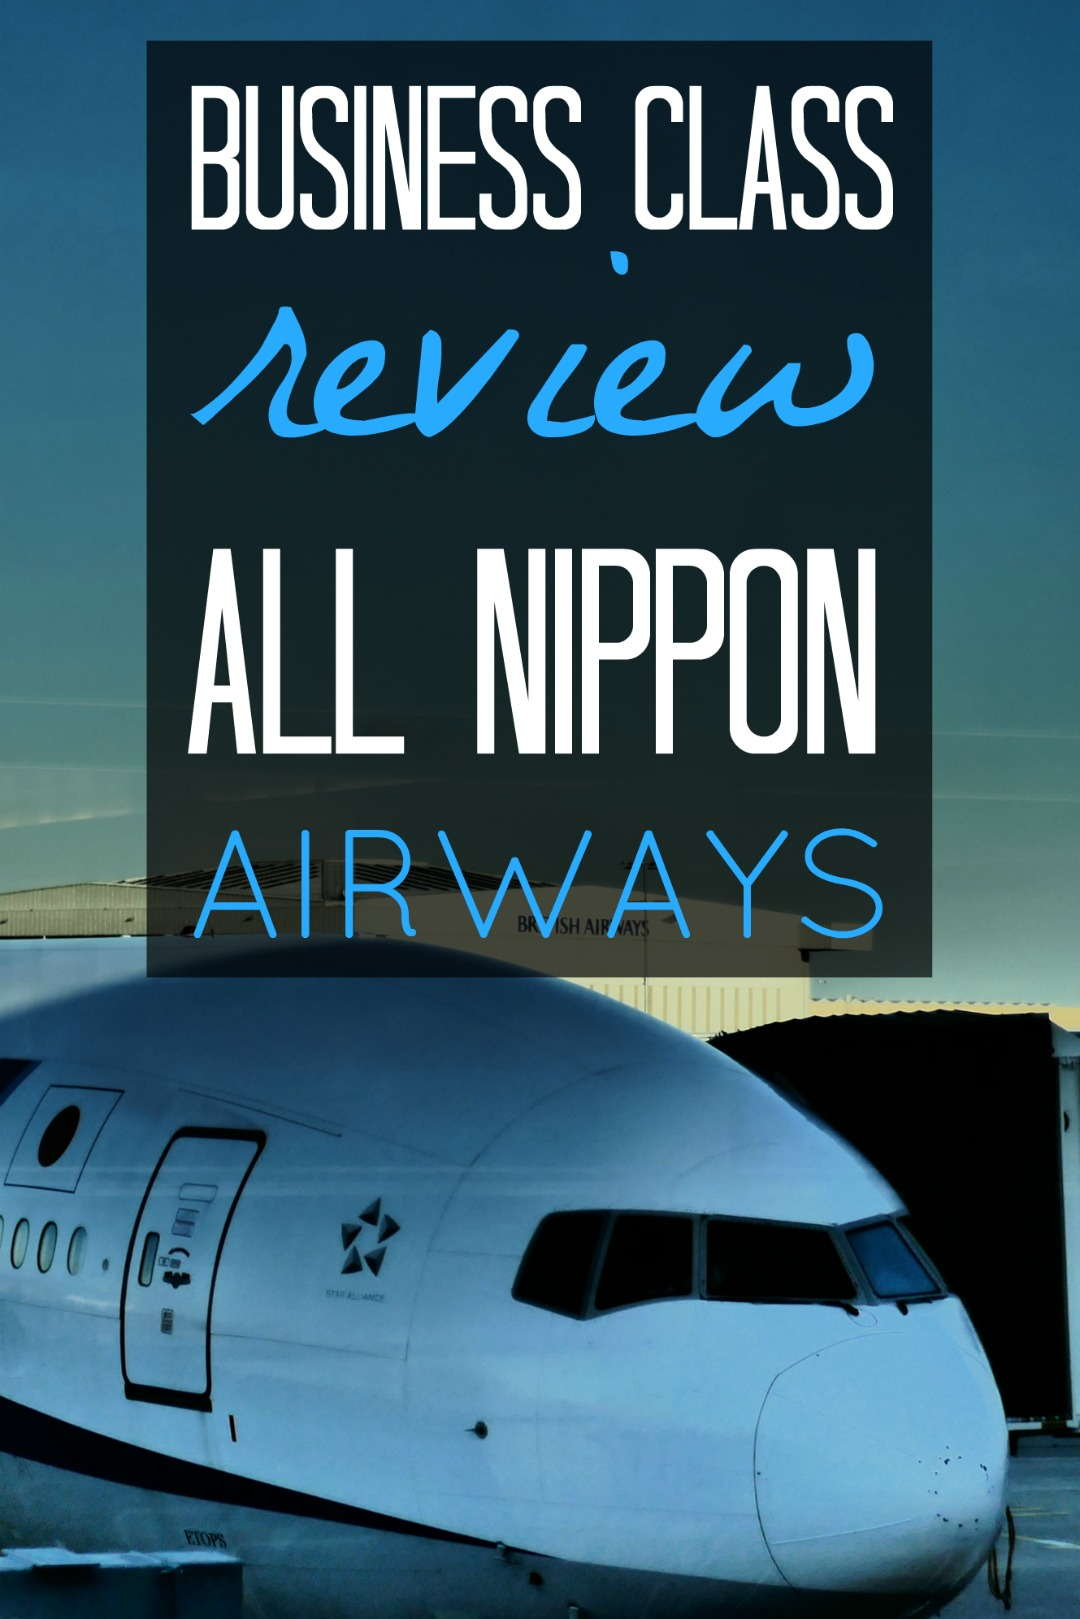 Pinterest flying business class review with ANA